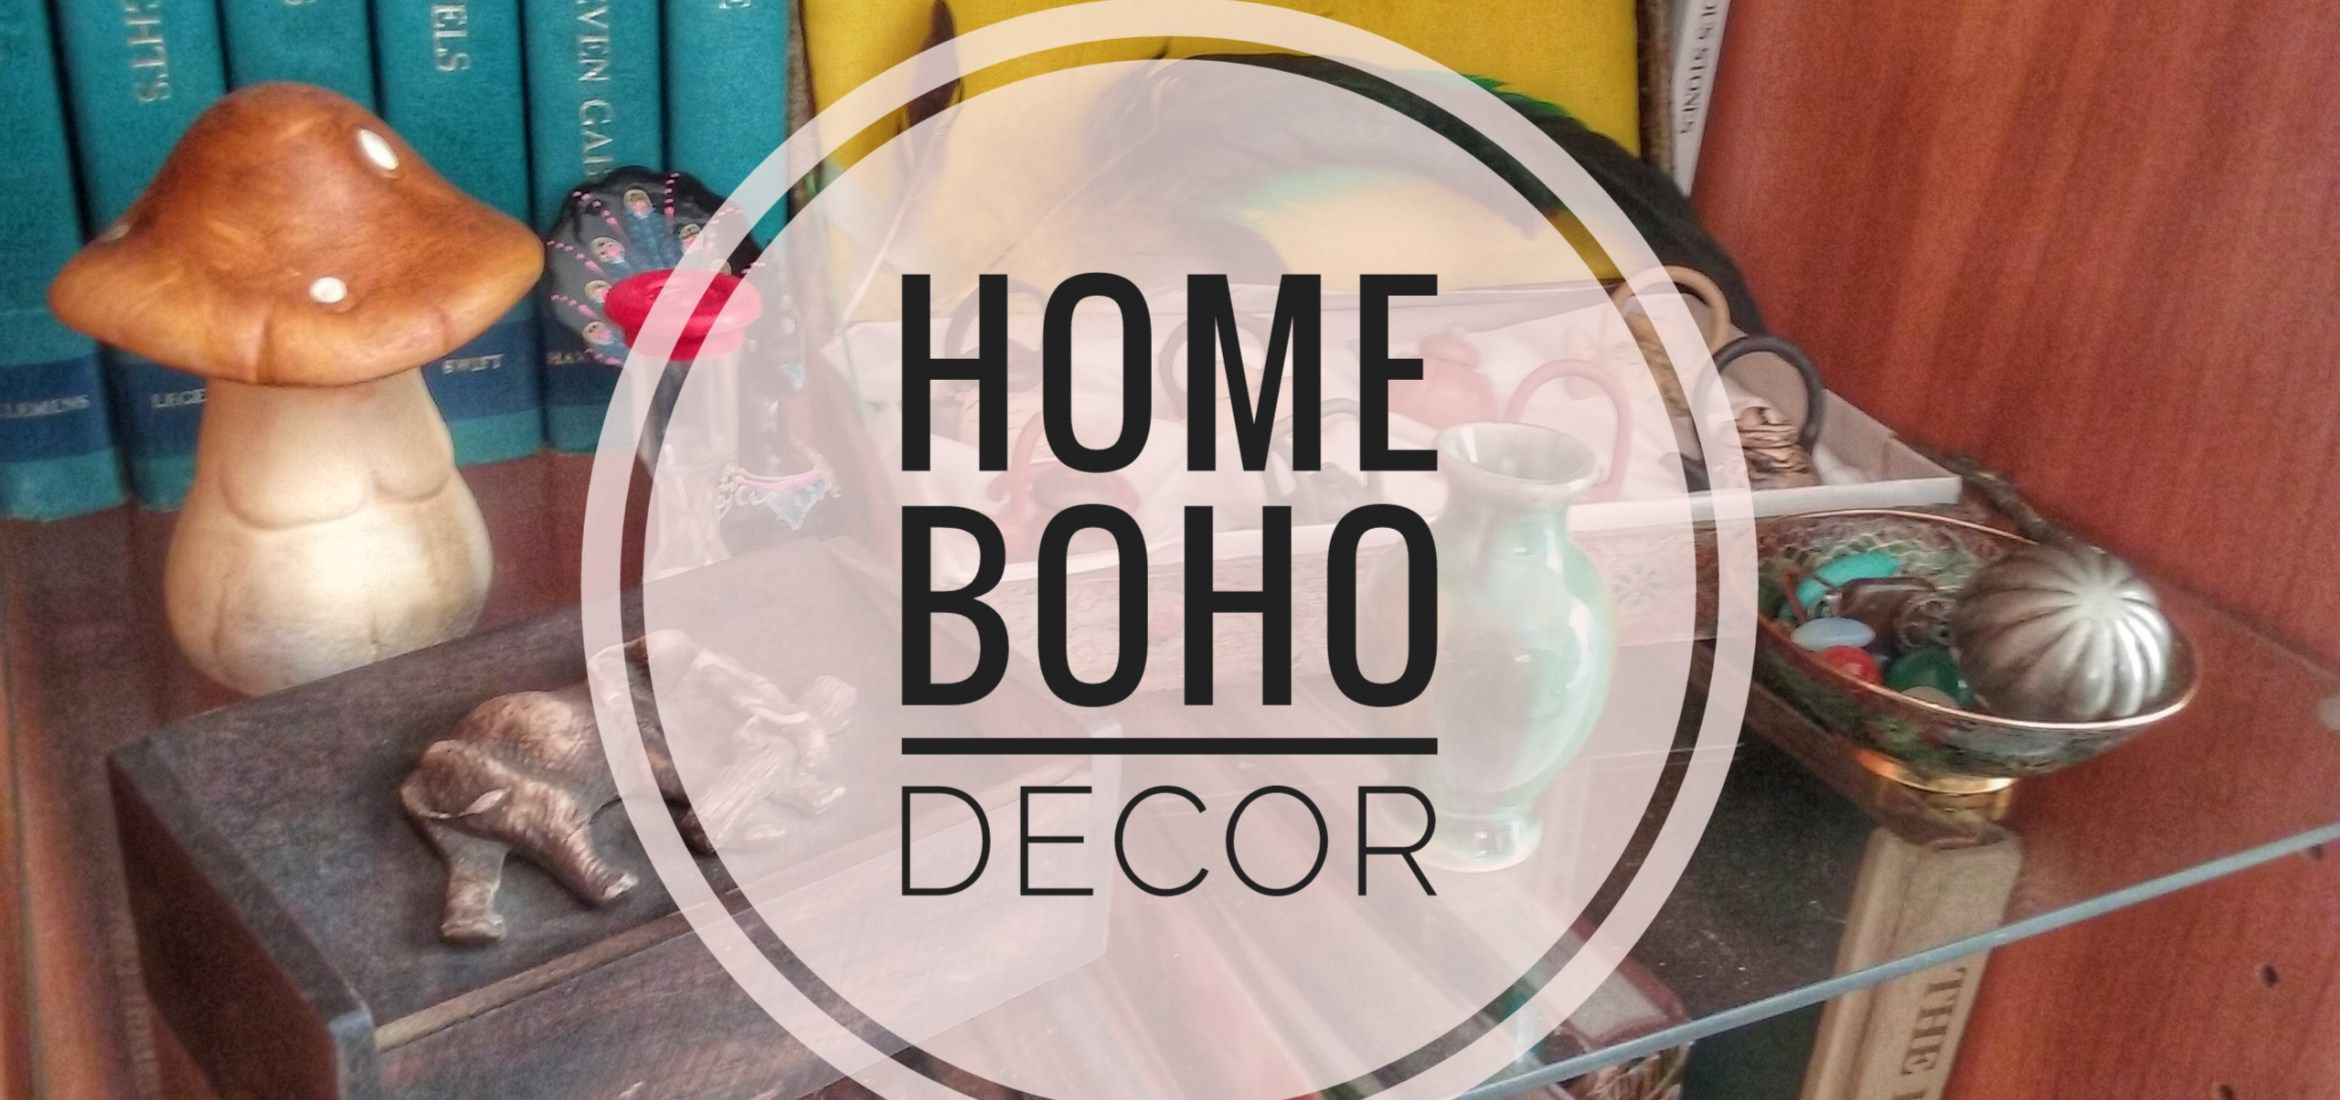 Home Boho Decor bohemian